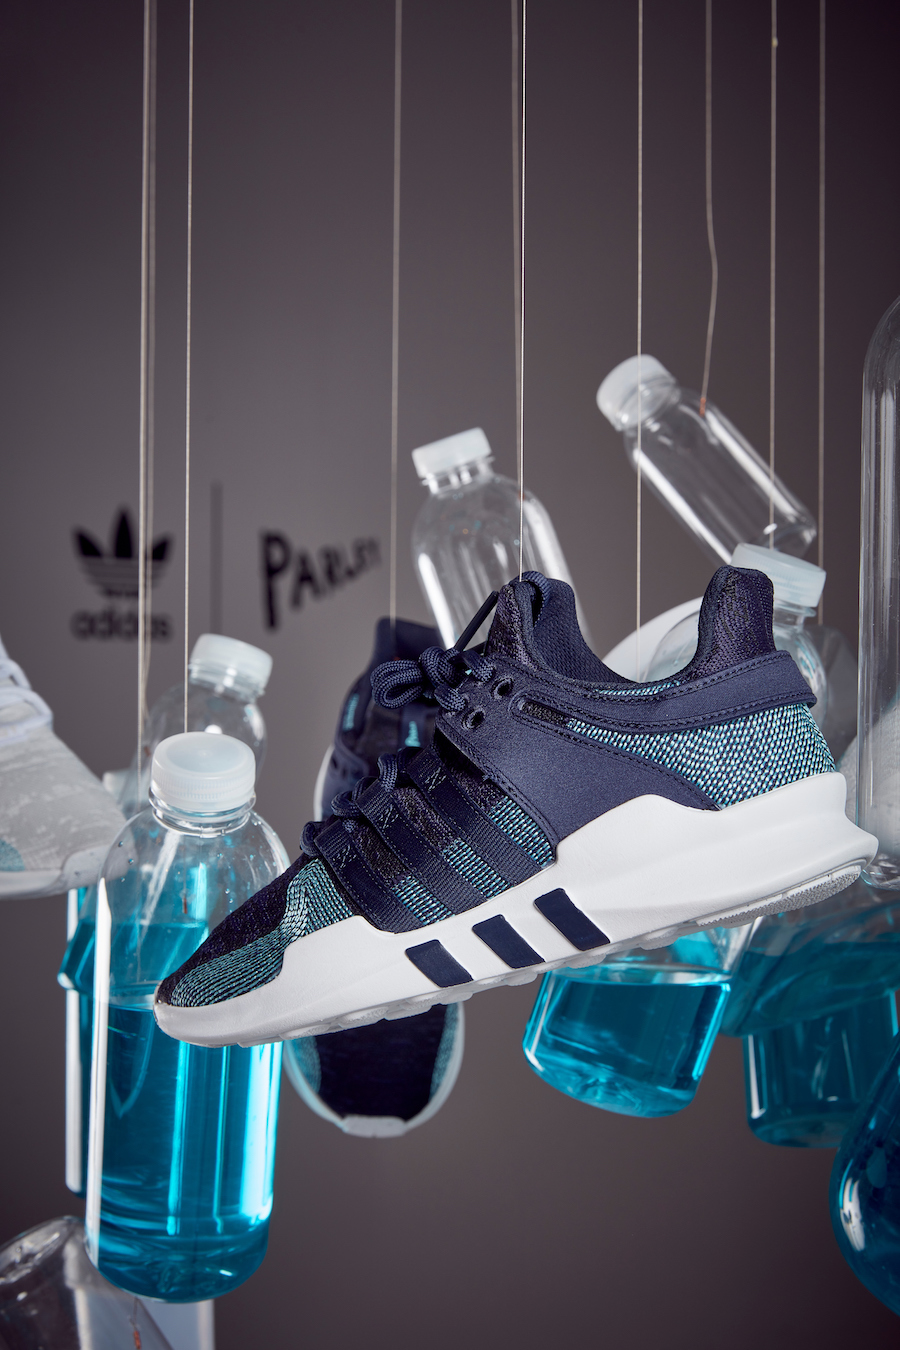 buy popular 083a0 a4c3c Adidas Originals and Parley for the Oceans Turn Trash Into a ...